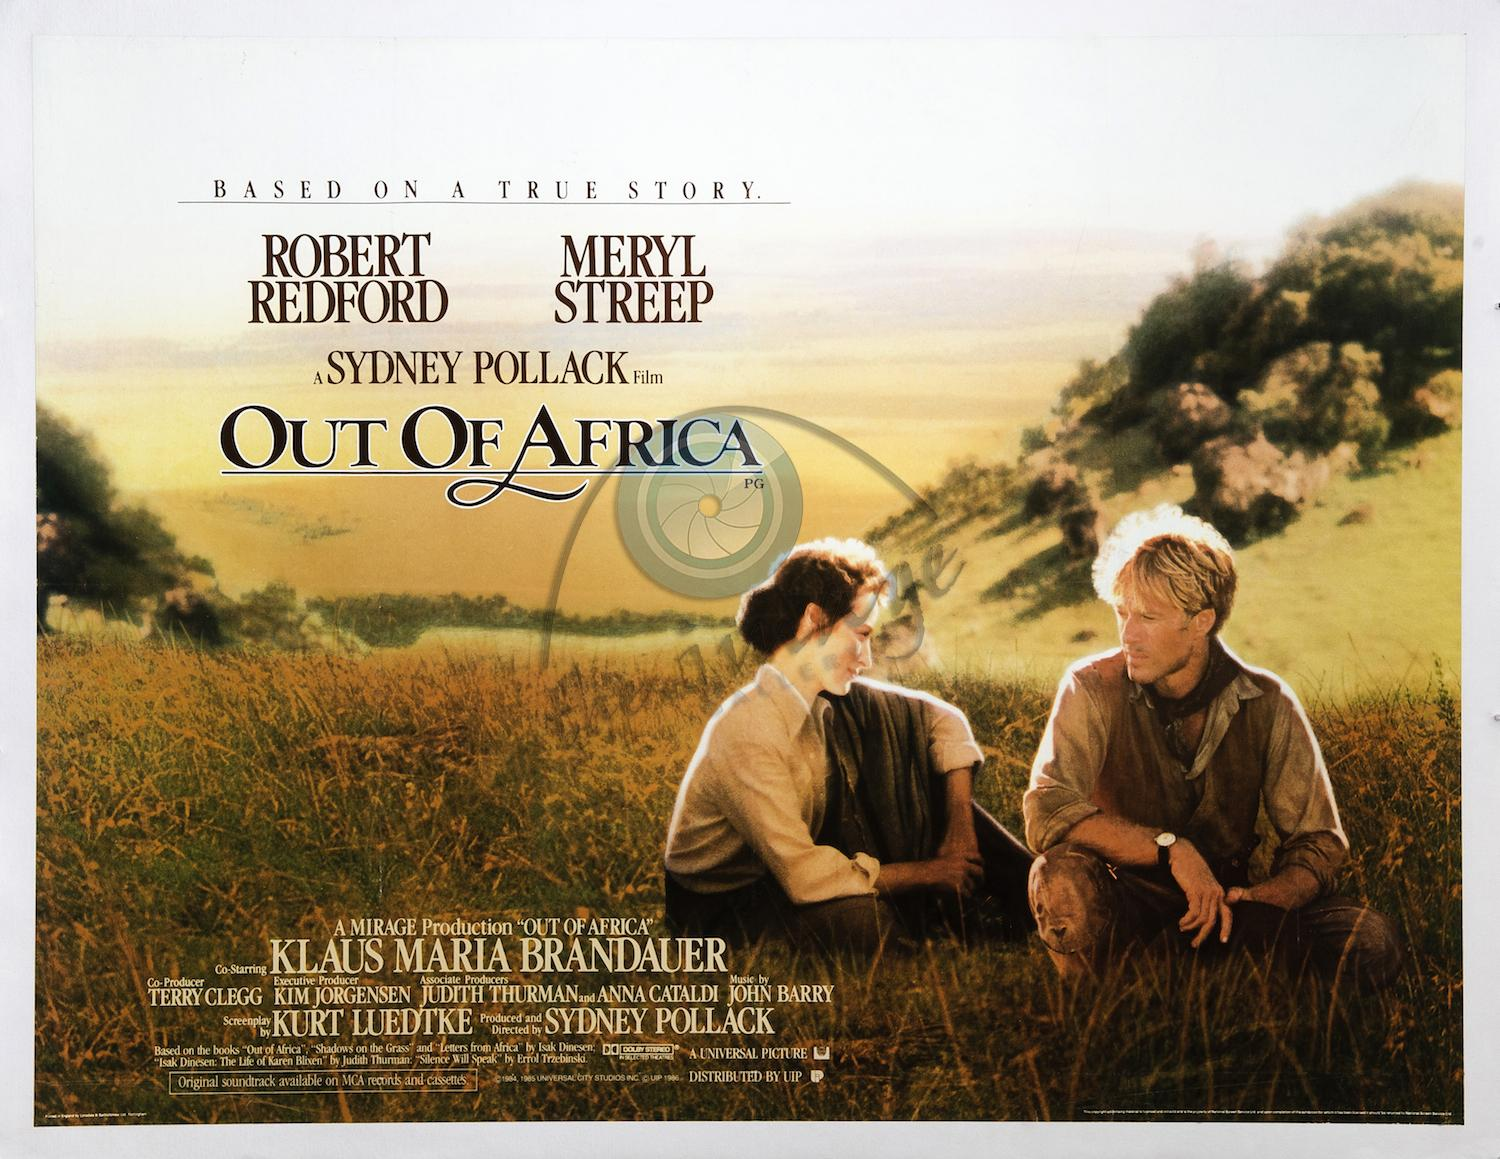 out_of_africa_LB_ukquad_250€_DRW6-2